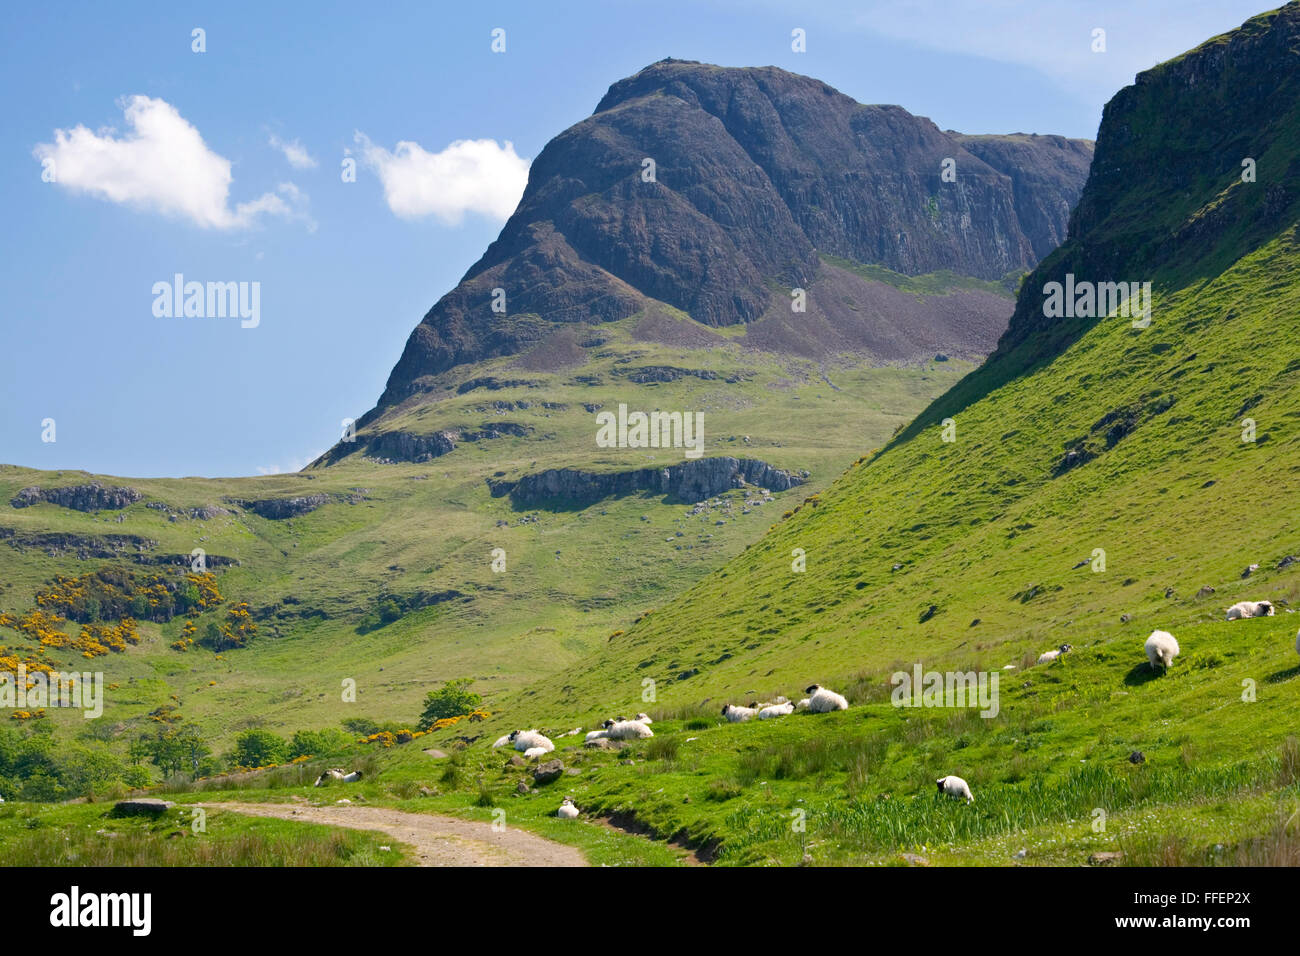 Carbost, Isle of Skye, Highland, Scotland. View along path through the Talisker Valley to the peak of Preshal More. Stock Photo